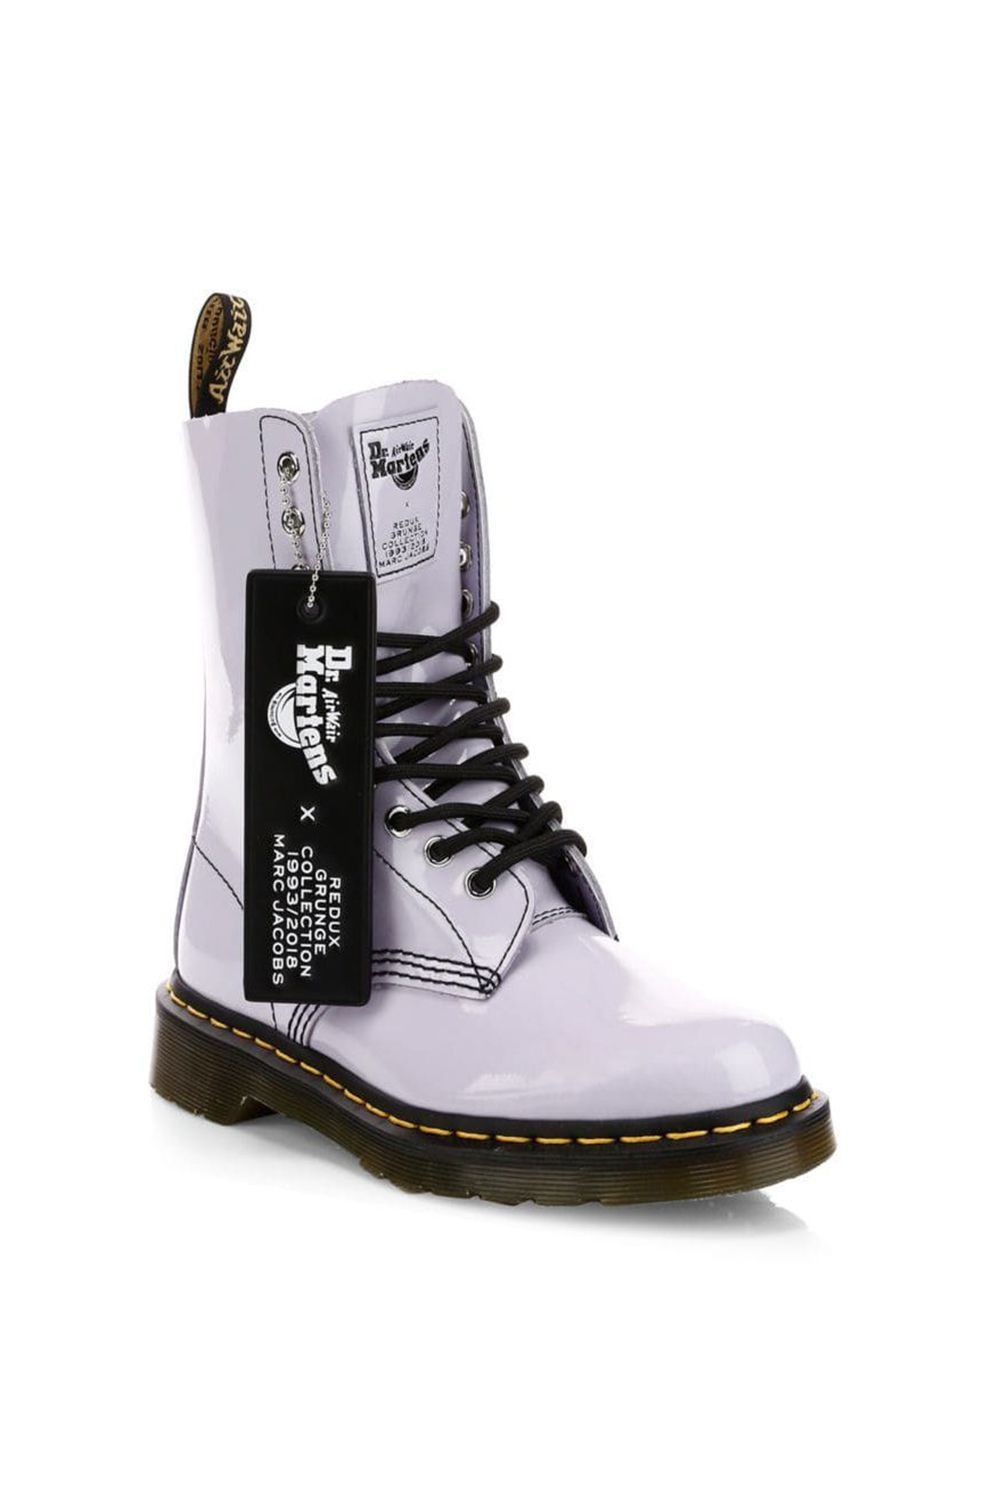 Dr. Martens X Marc Jacobs Patent Leather Boots Marc Jacobs saksfifthavenue.com $220.00 SHOP IT I'm a big believer of staying in my lane when it comes to writing about fashion, so I'll admit that lace-up boots have never been my forte. That being said, this lavender patent leather boot from the Dr. Martens x Marc Jacobs collaboration is so delightfully refreshing that even I'm rethinking my stance on combat boots.